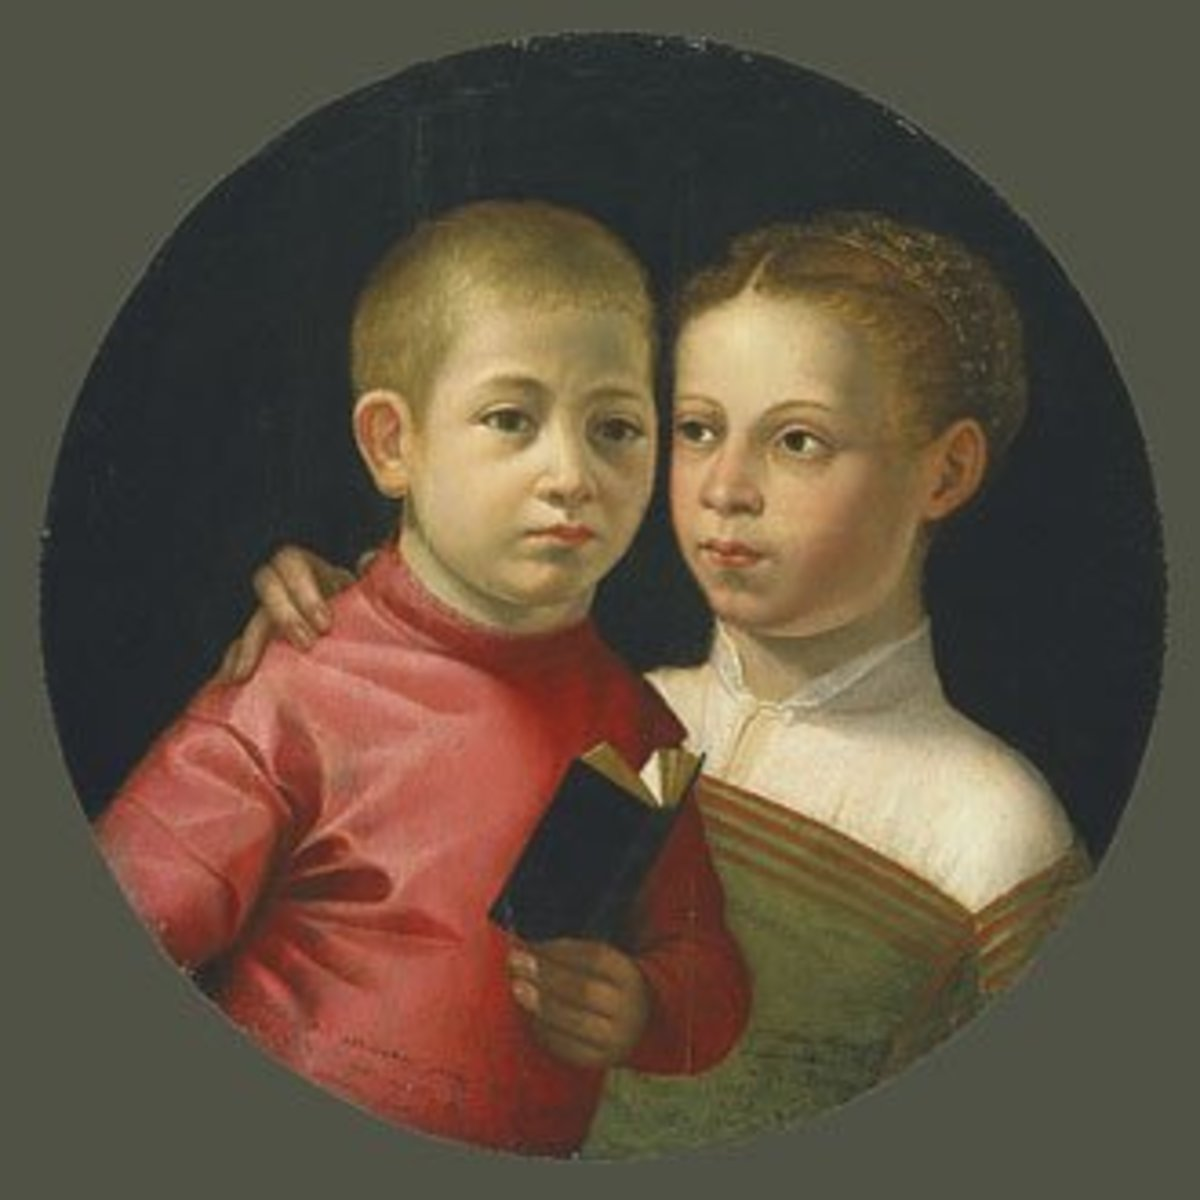 Boy and Girl of the Attavanti family (early 1580s), Oberlin College, Allen Memorial Art Museum - This portrait is one of the few known paintings of the Genoan period